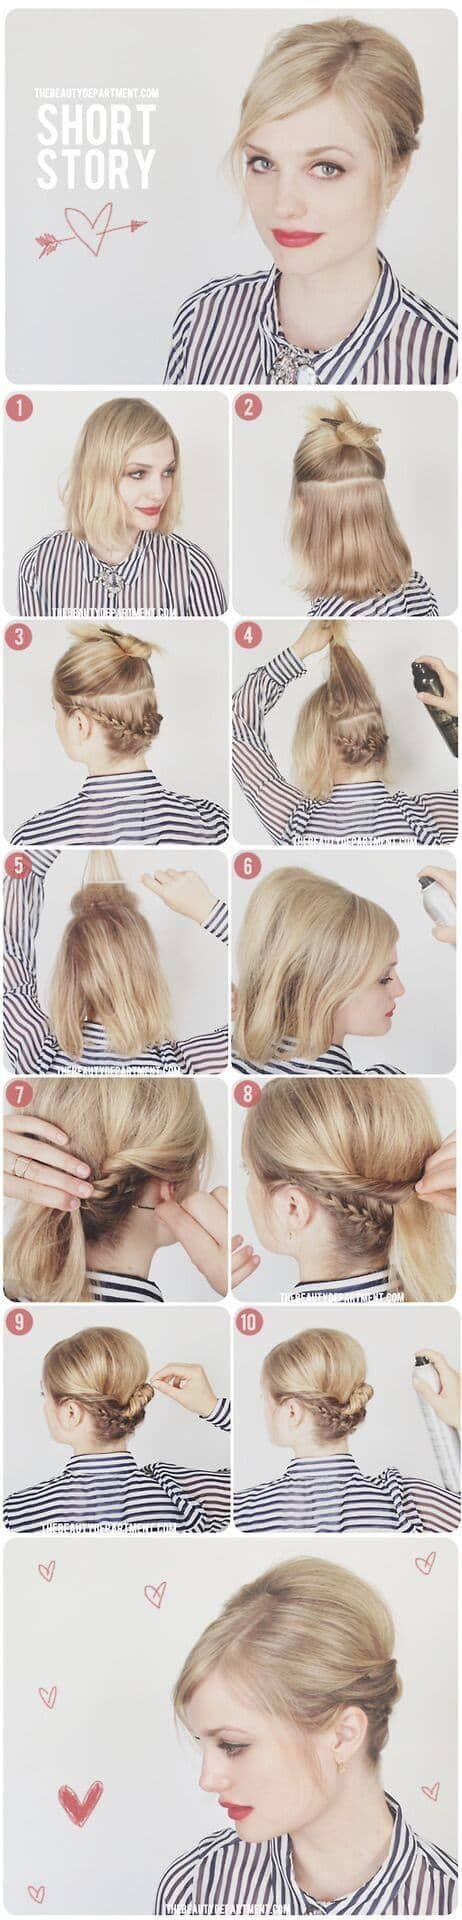 Updo With Braided Details